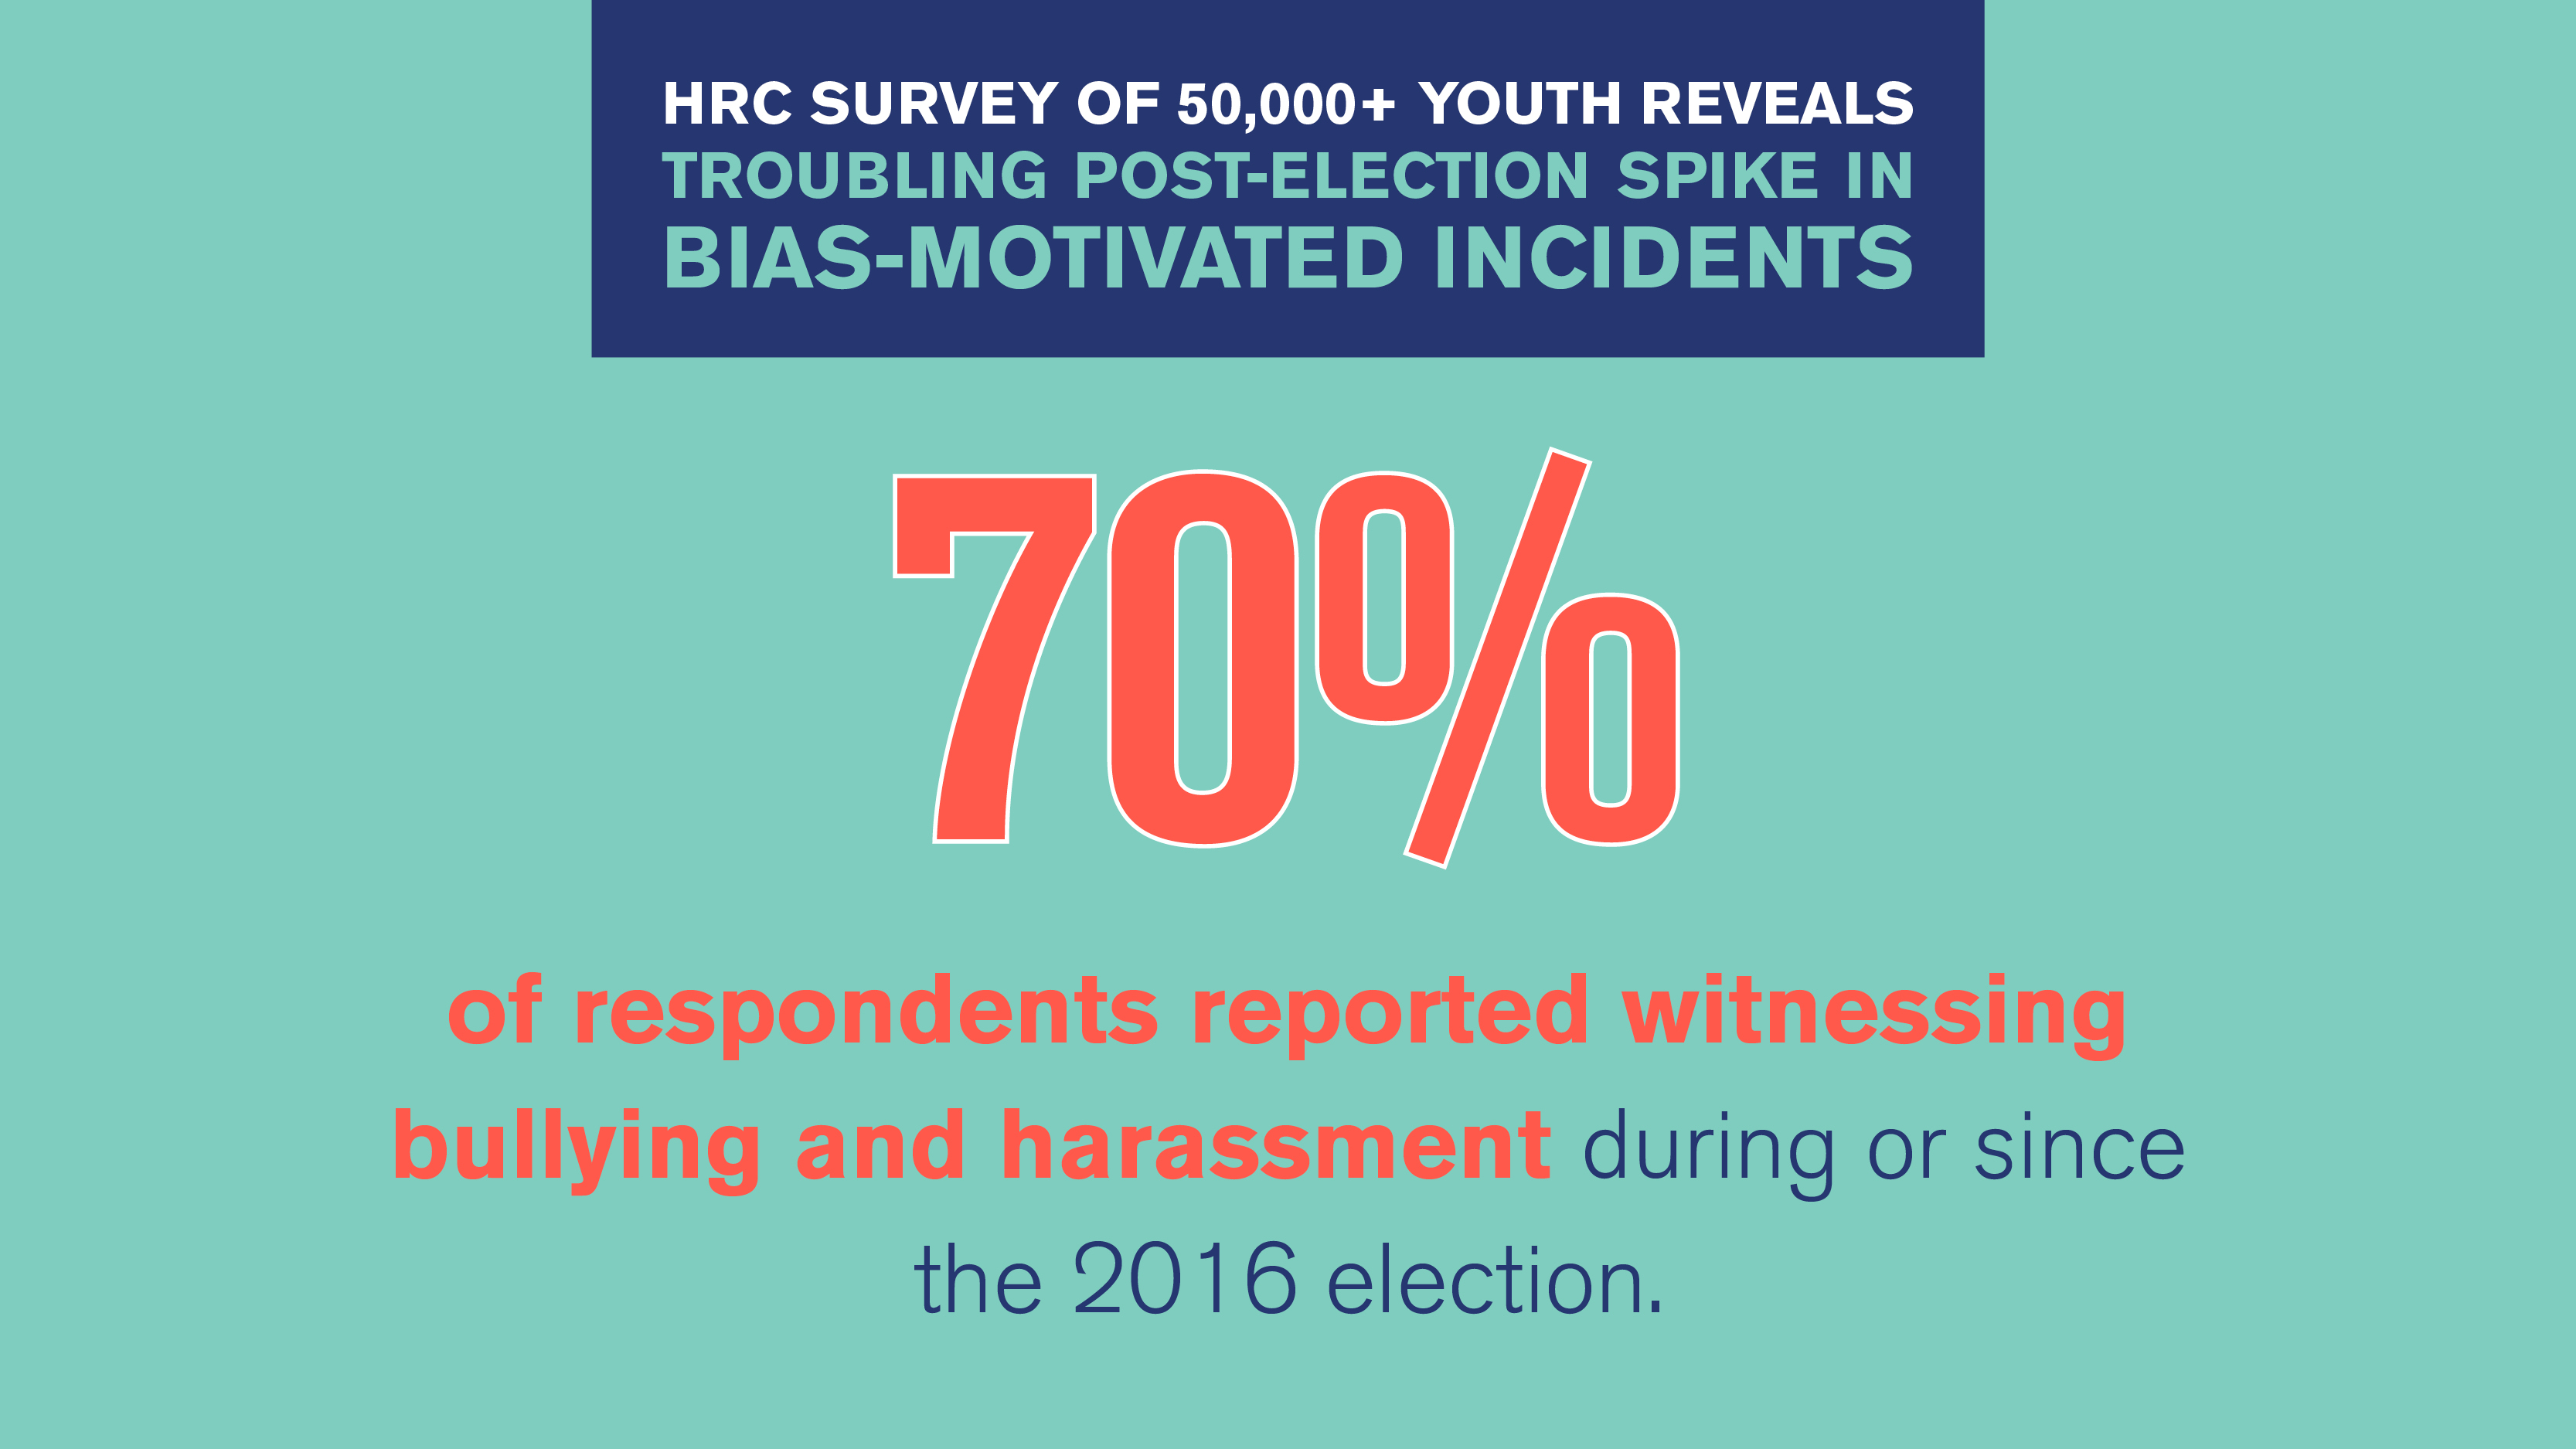 survey of 50,000+ youth reveals post-election spike in bullying